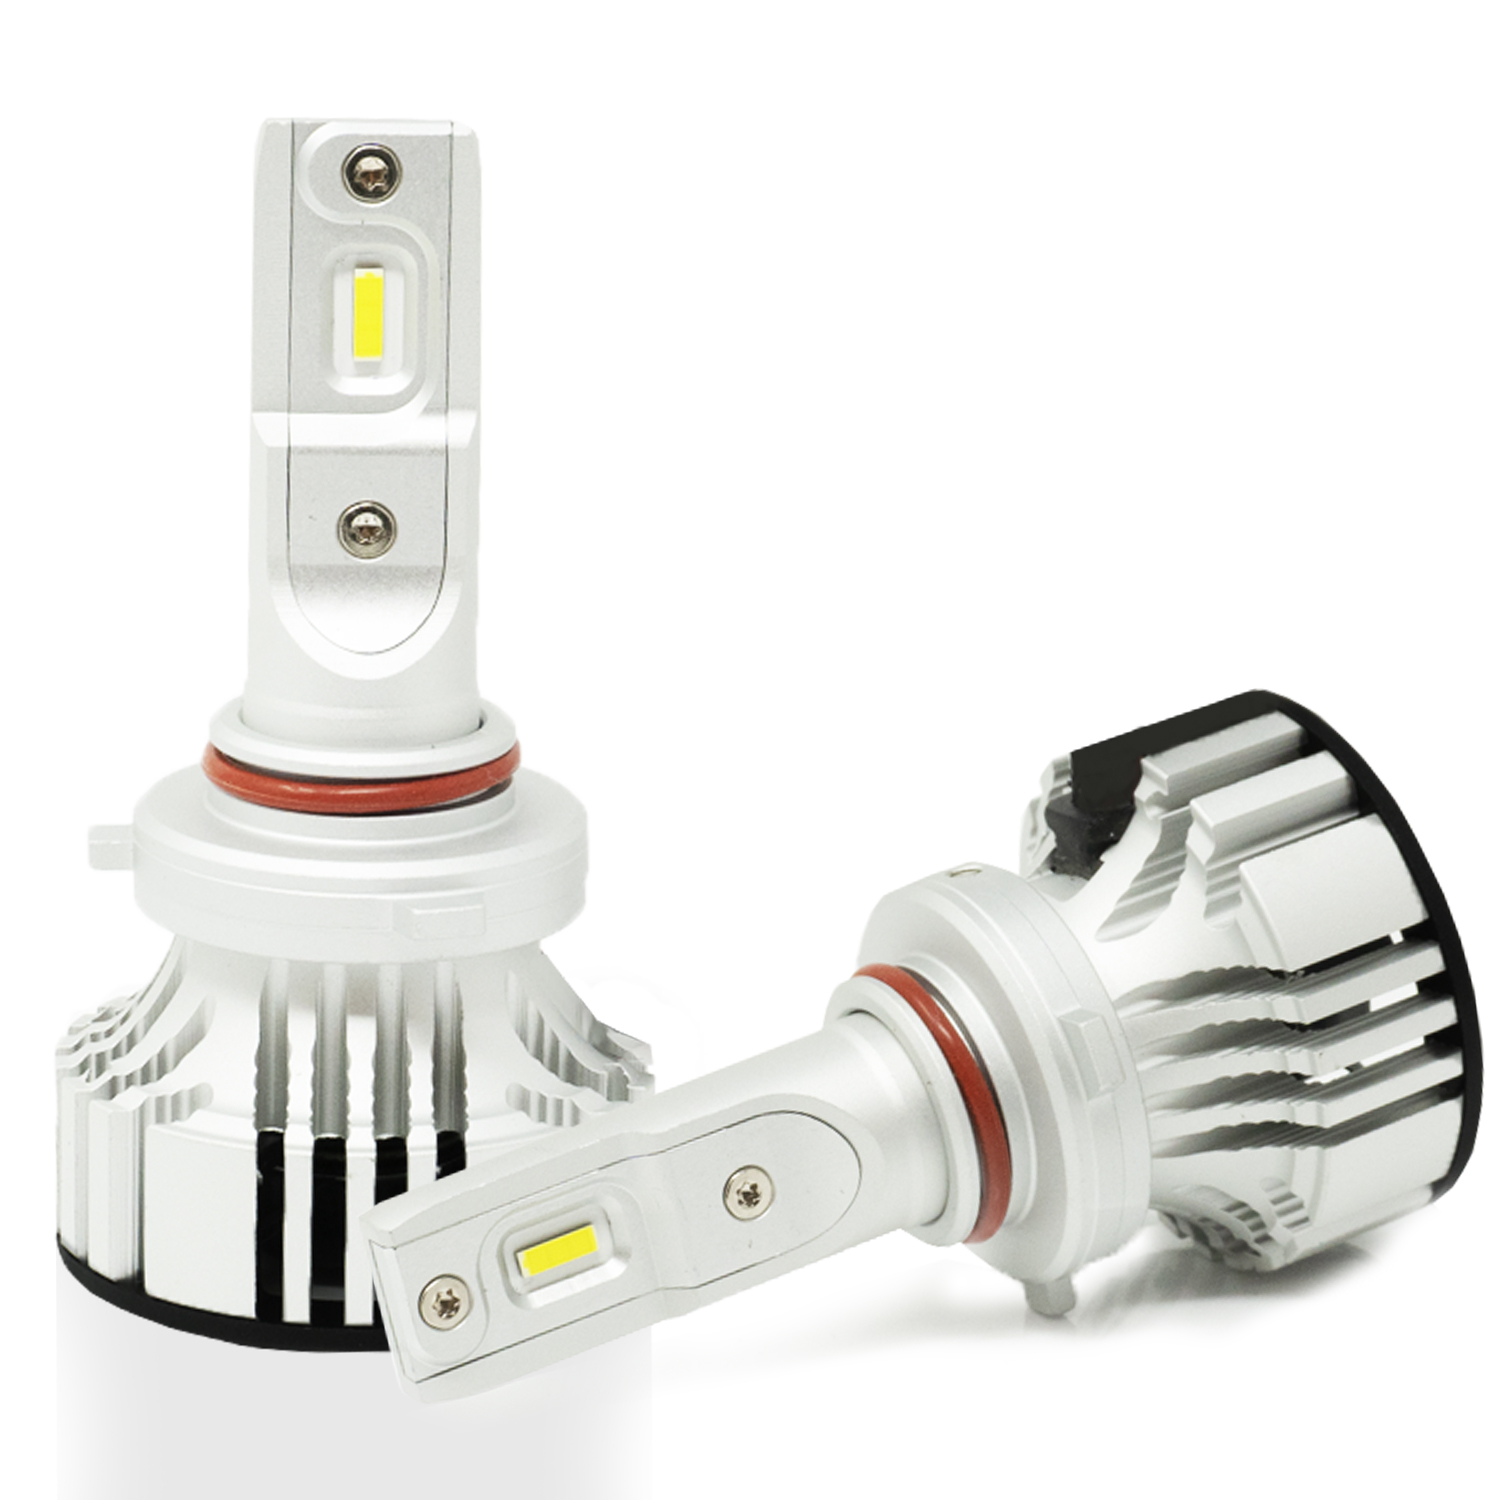 Best Ram 1500 LED High Beam Headlight Bulb, 6K White/Yellow/Red/Blue